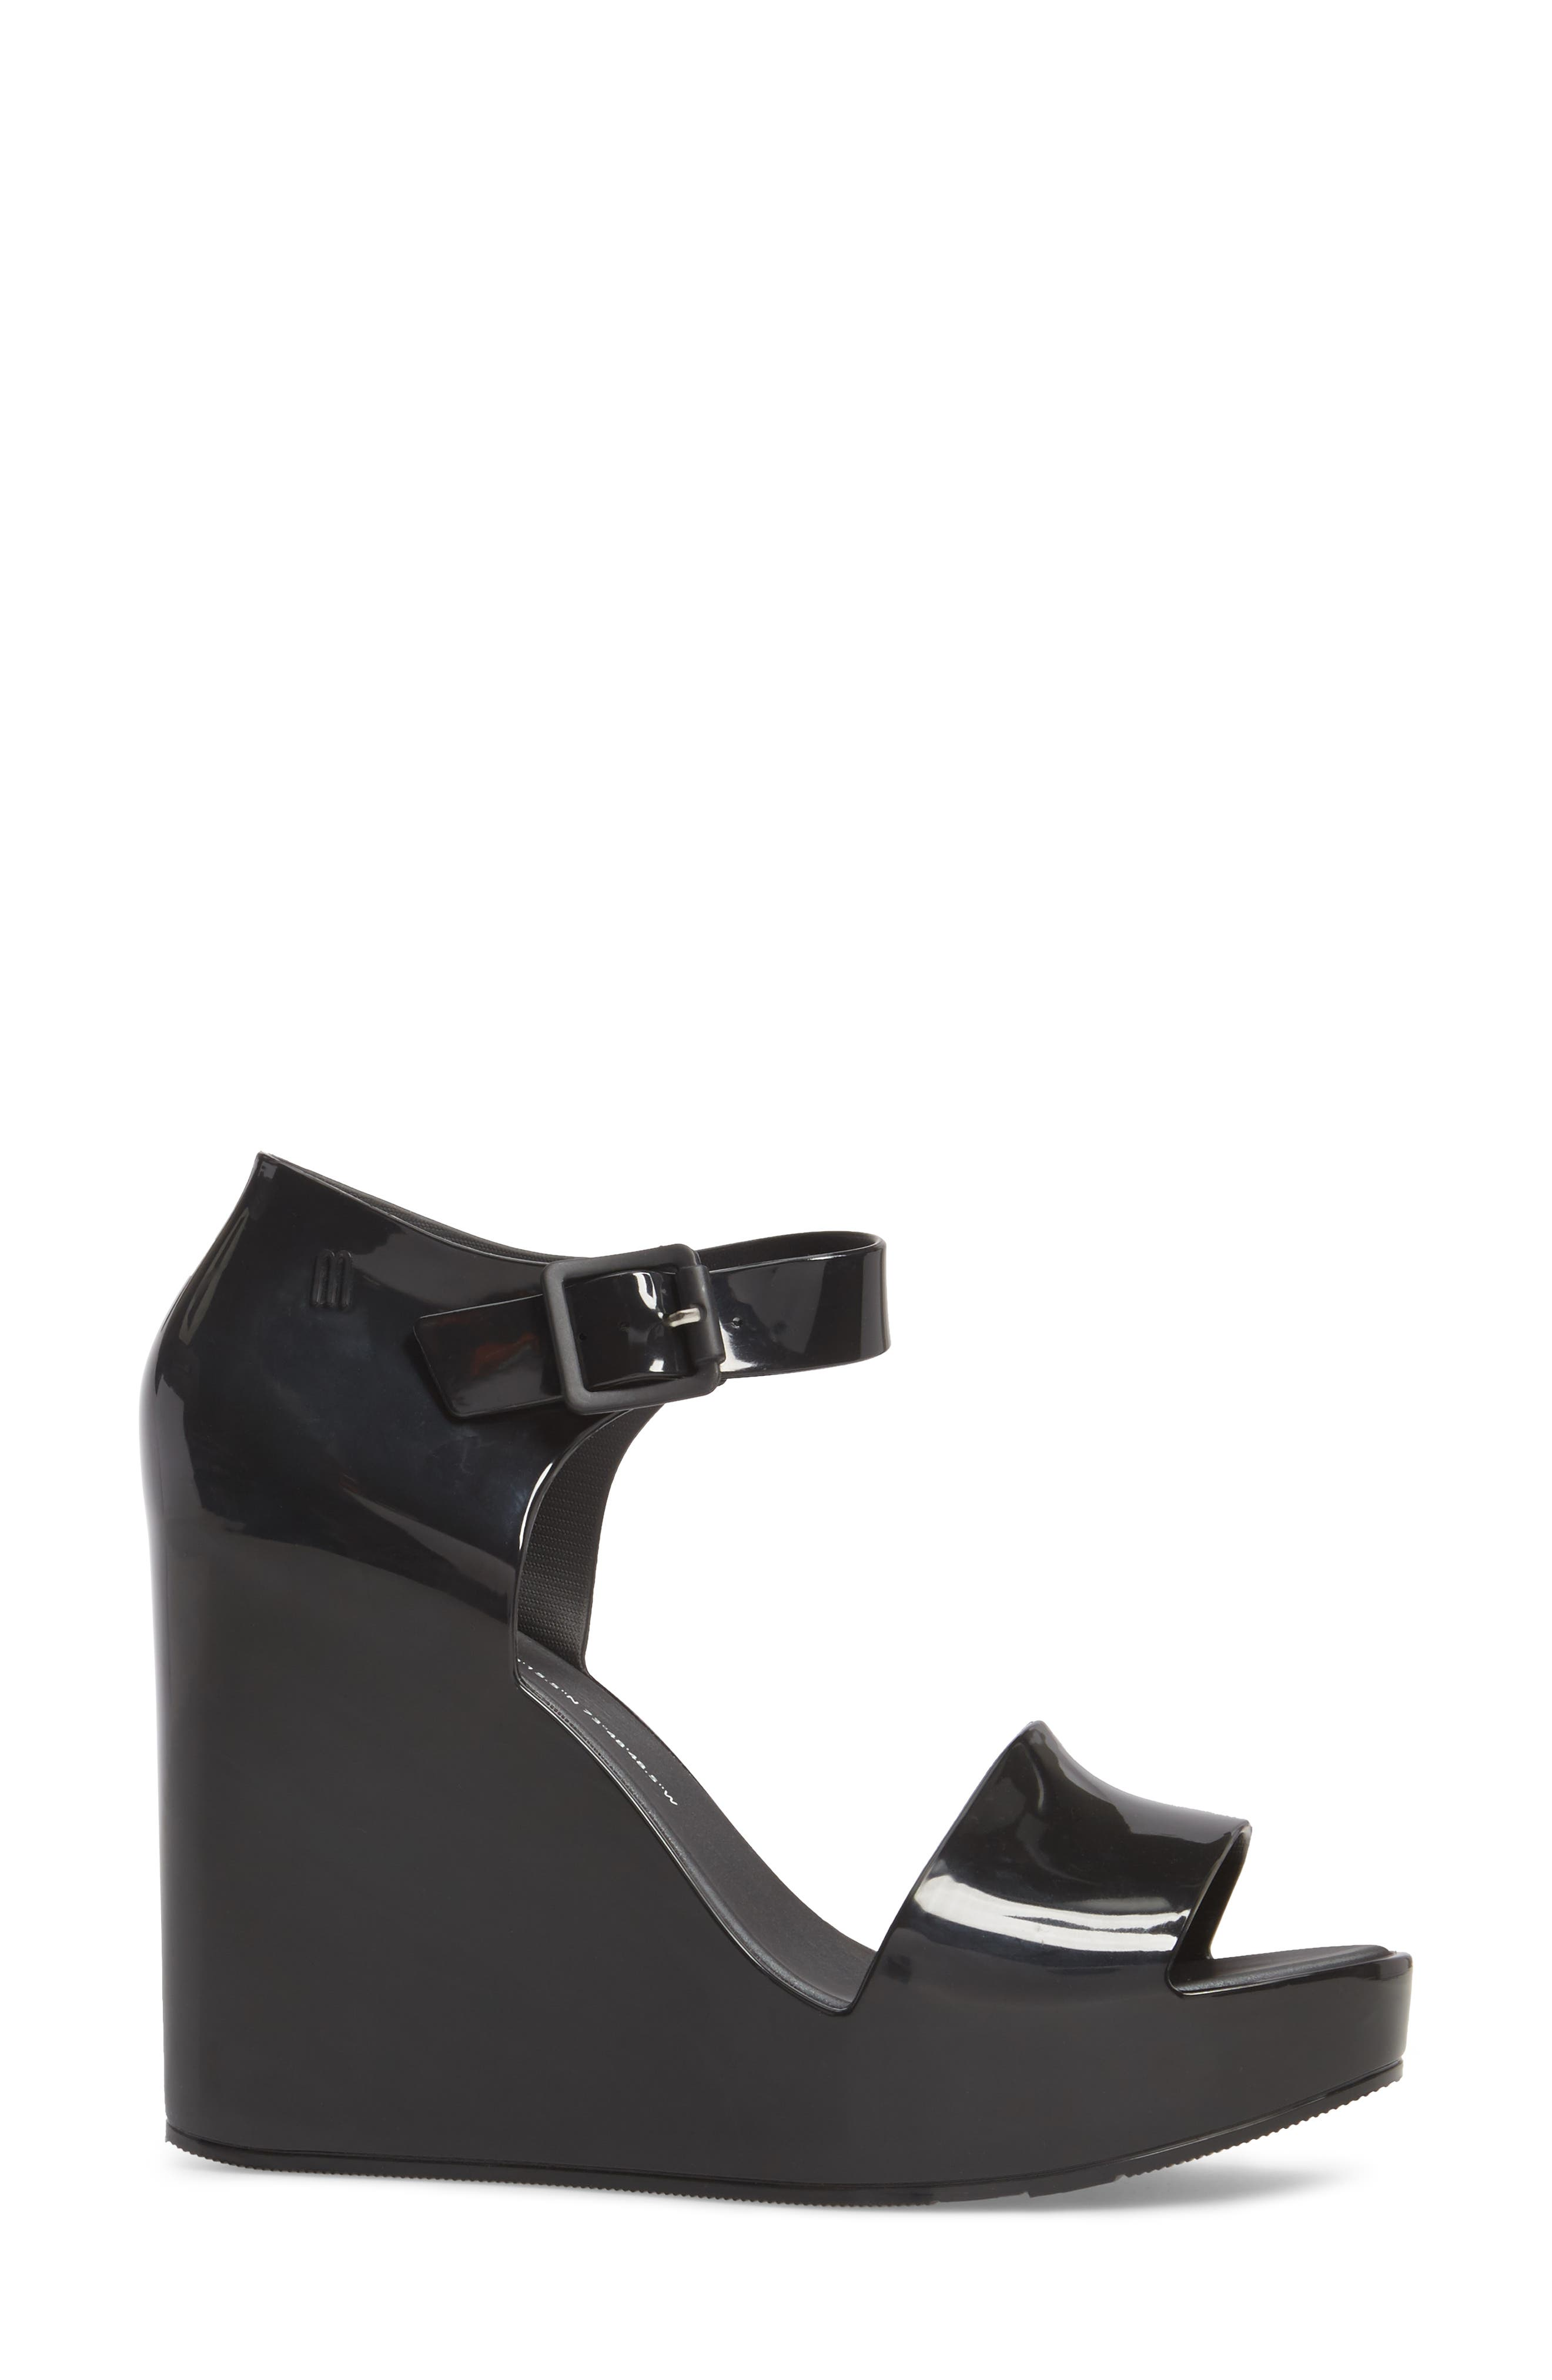 Mar Platform Wedge Sandal,                             Alternate thumbnail 3, color,                             BLACK